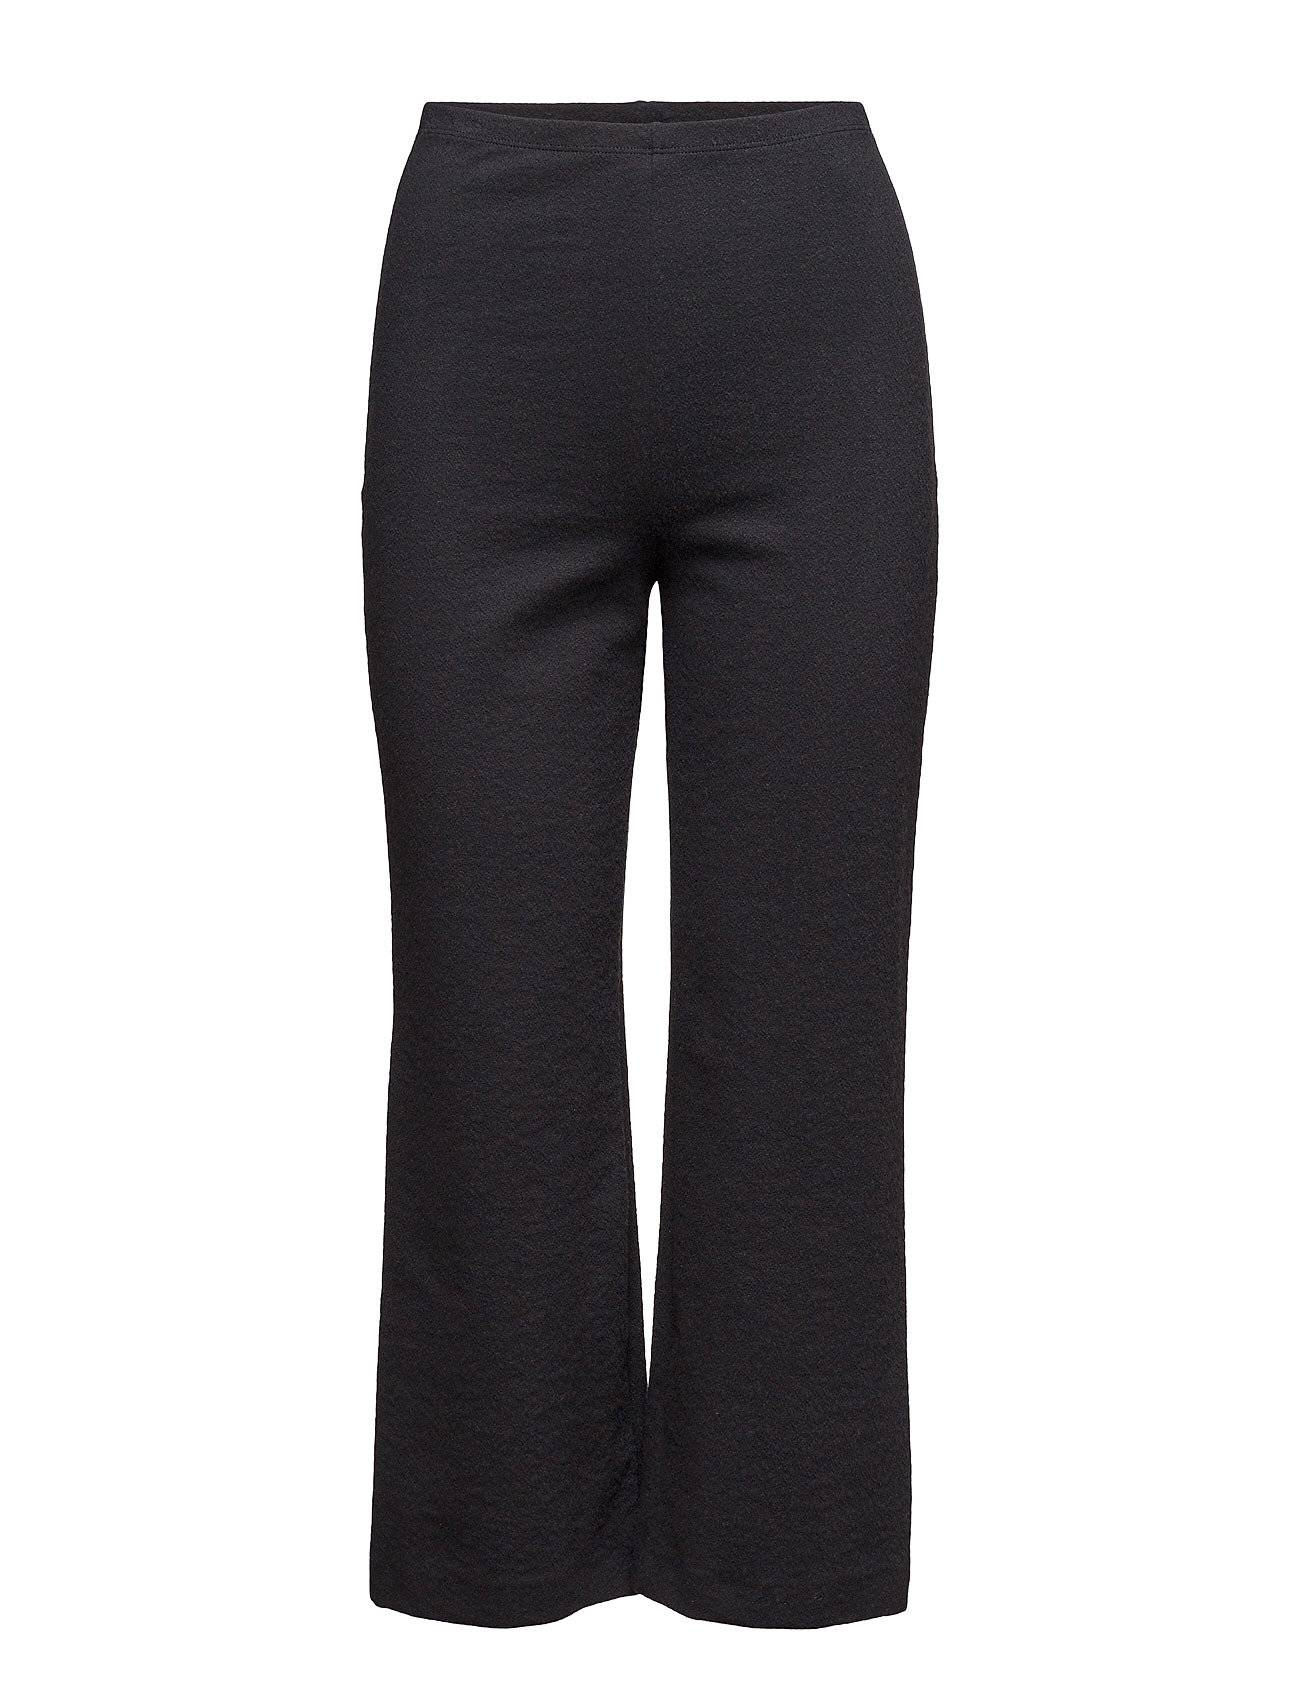 Wolford Structured Leggings